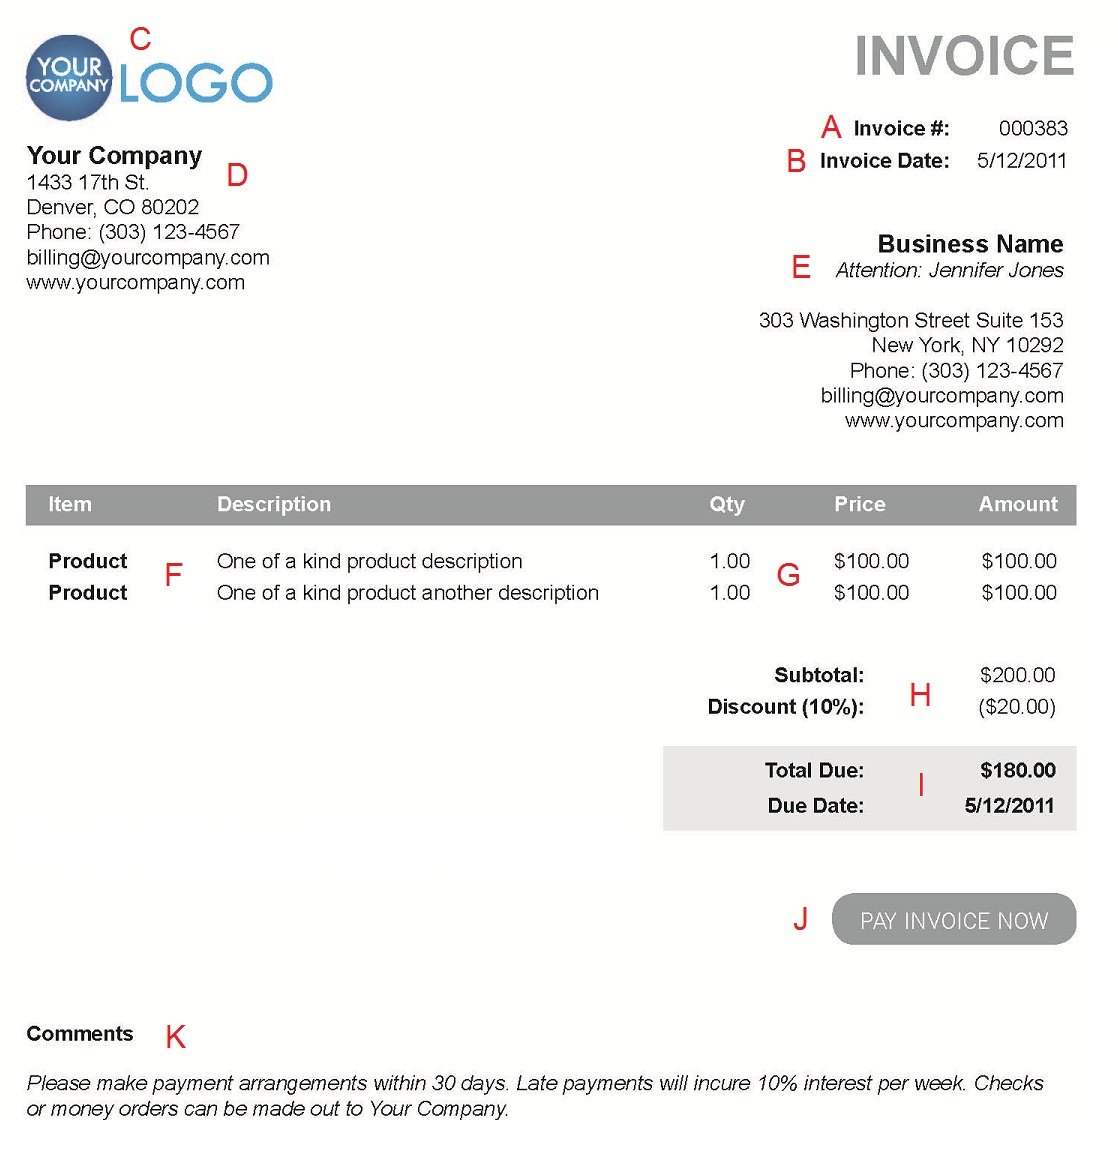 Atvingus  Marvellous The  Different Sections Of An Electronic Payment Invoice With Magnificent A  With Adorable Biscuits Receipts Also Received Receipt Template In Addition Receipt Of Rent Payment Template And Money Receipt Format Doc As Well As Receipts And Payments Format Additionally Lic Premium Paid Receipt From Paysimplecom With Atvingus  Magnificent The  Different Sections Of An Electronic Payment Invoice With Adorable A  And Marvellous Biscuits Receipts Also Received Receipt Template In Addition Receipt Of Rent Payment Template From Paysimplecom